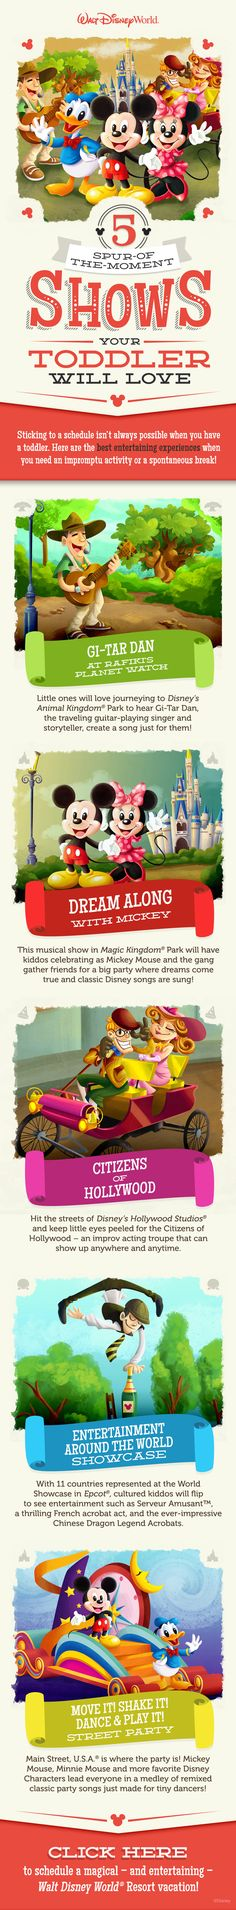 5 Spur-of-the-moment Shows Your Toddler Will Love During Your Walt Disney World Vacation! #tips #tricks